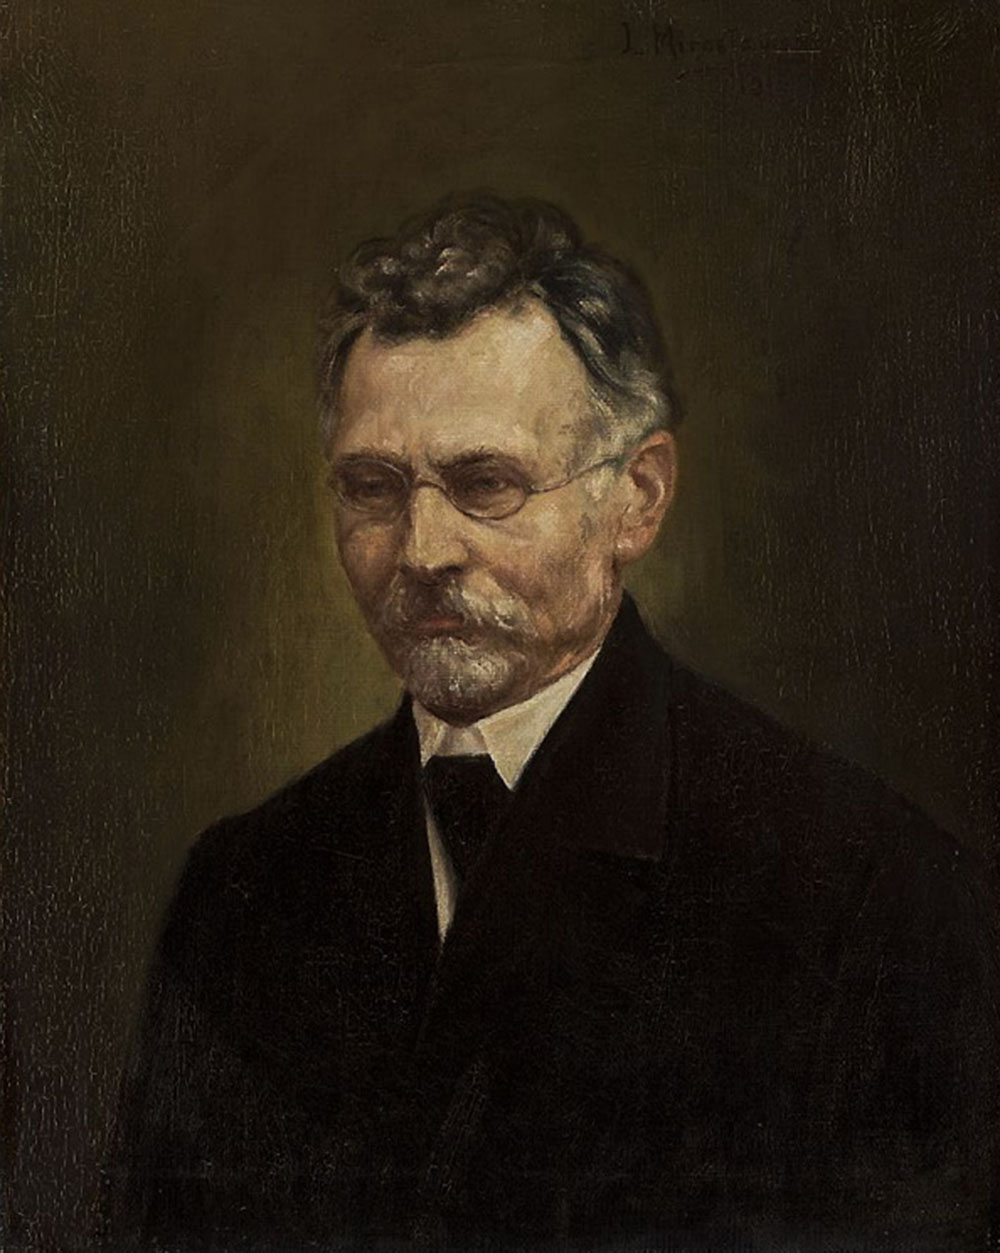 Portrait of Bolesław Prus by Leokadia Mirosławska, photo: National Museum in Warsaw